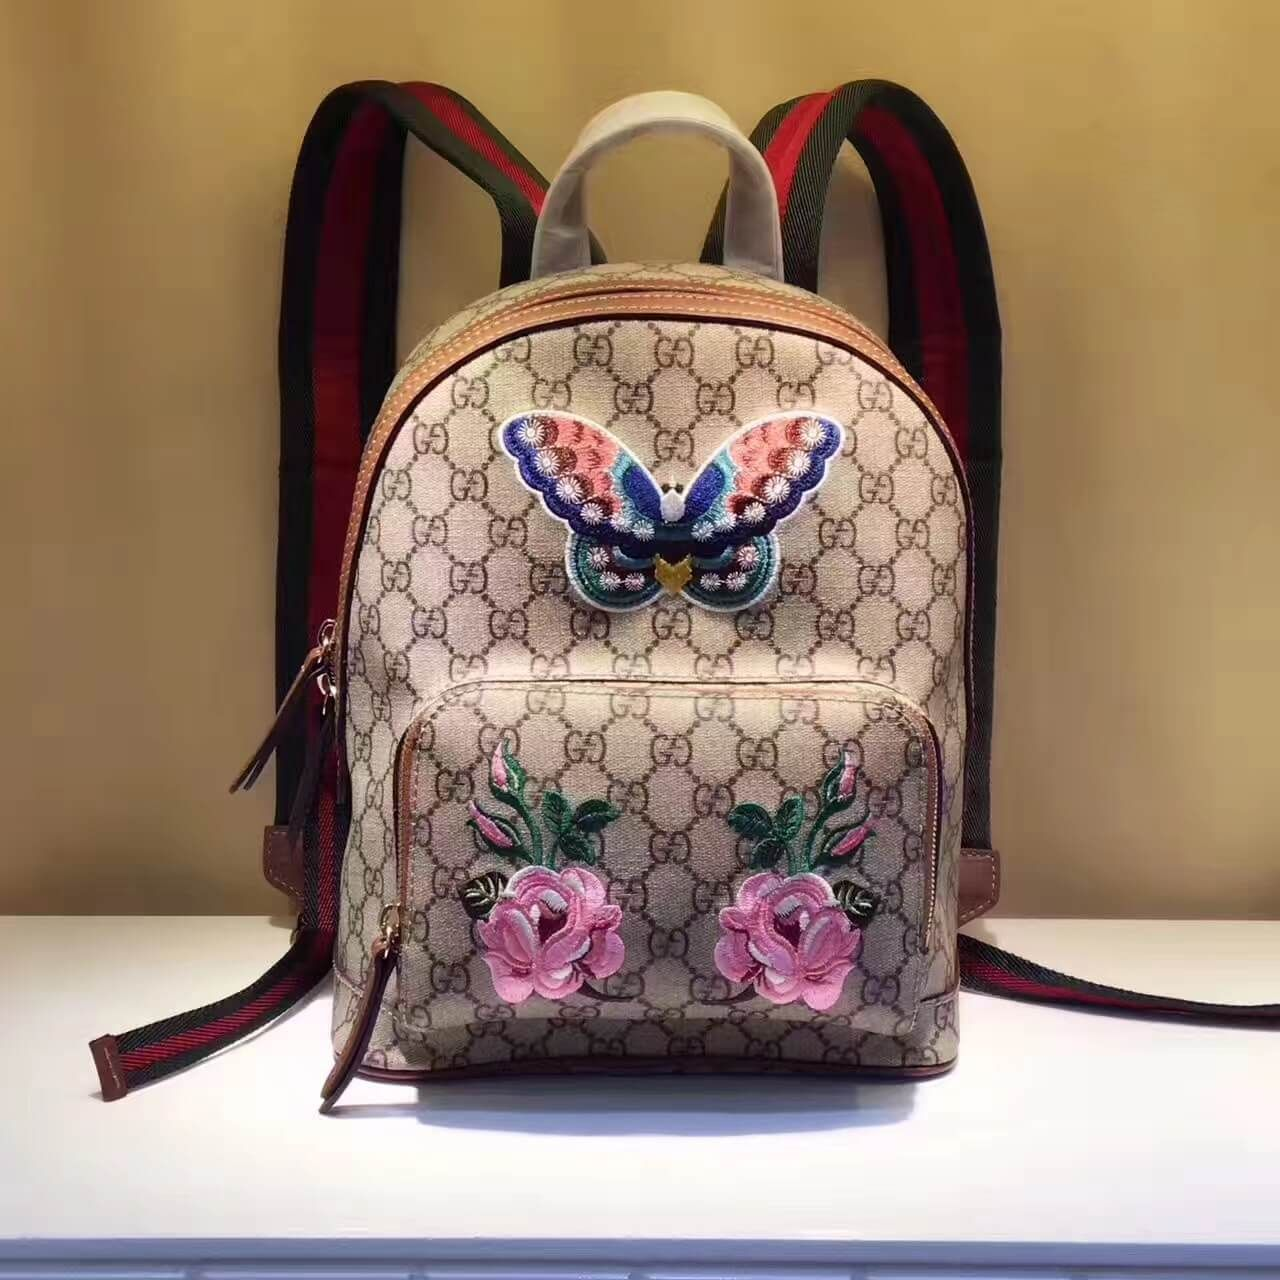 8a187723628d Gucci Exclusive GG Supreme Backpack With Flwers Butterfly Embroidery 427042  2017